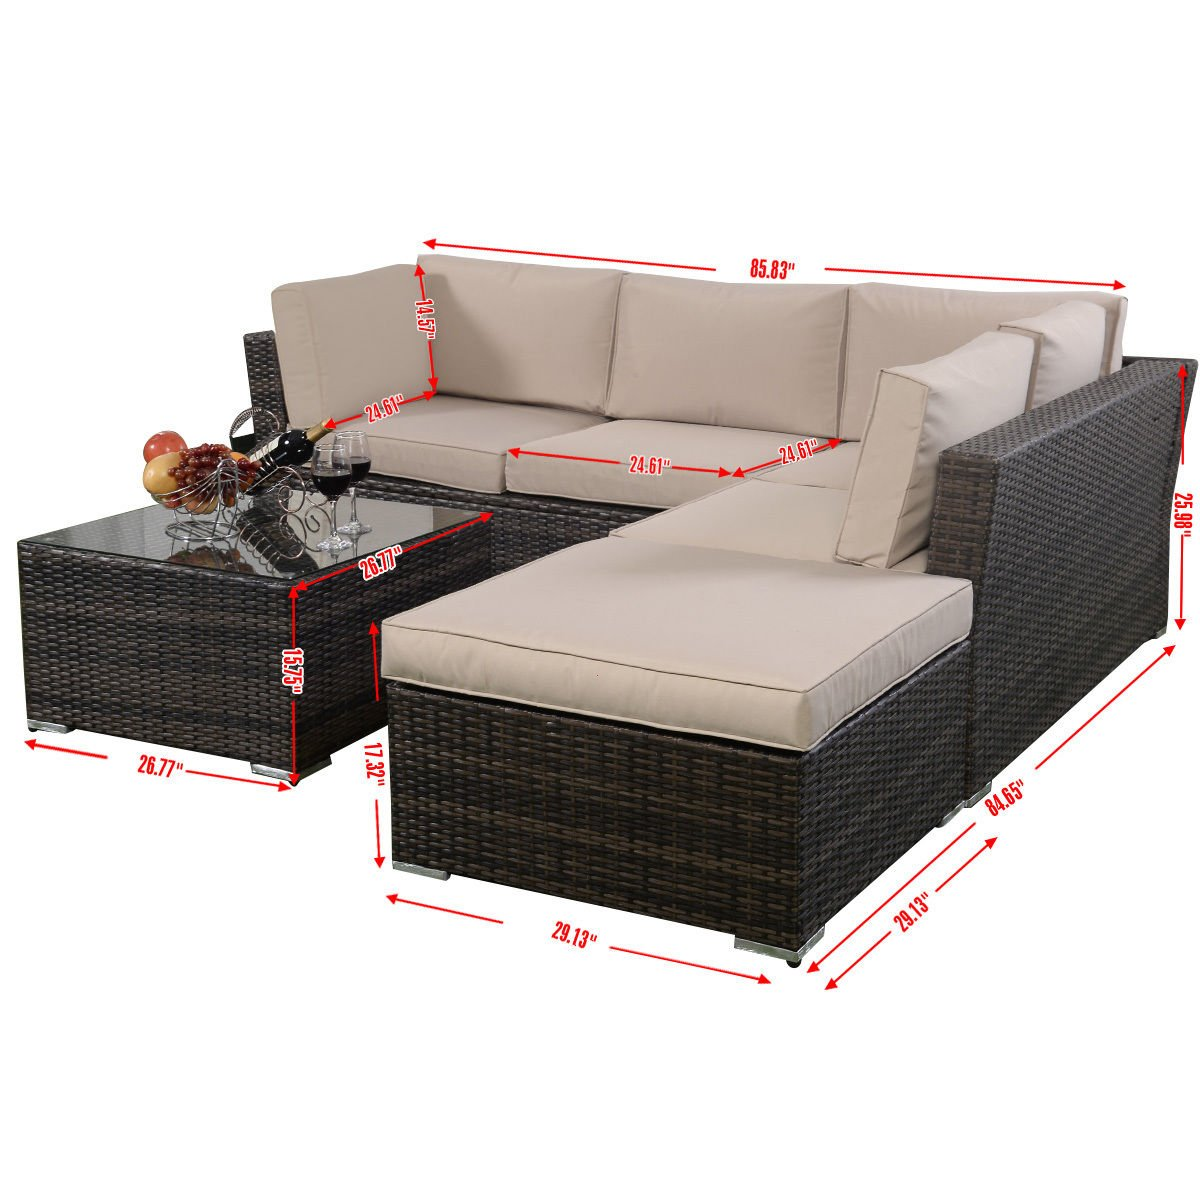 furniture of cool outdoor sofa wicker patio cushions unique sectional